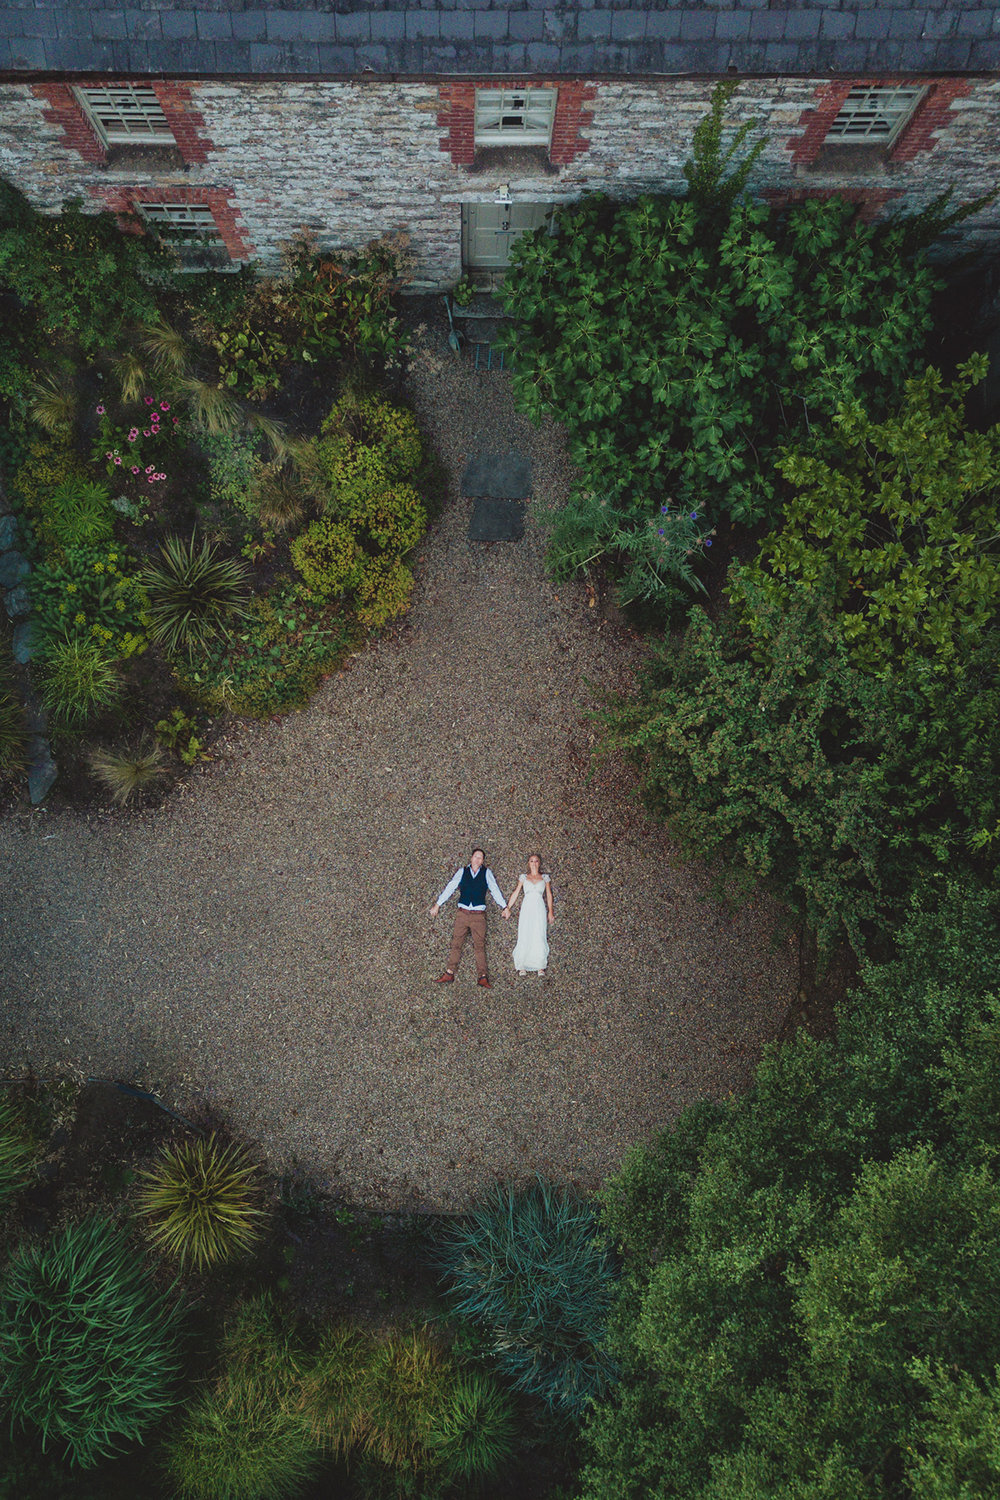 Noosa & Ireland Drone Destination Wedding & Family Photographers, Sunshine Coast - Queensland, Australian Elopement